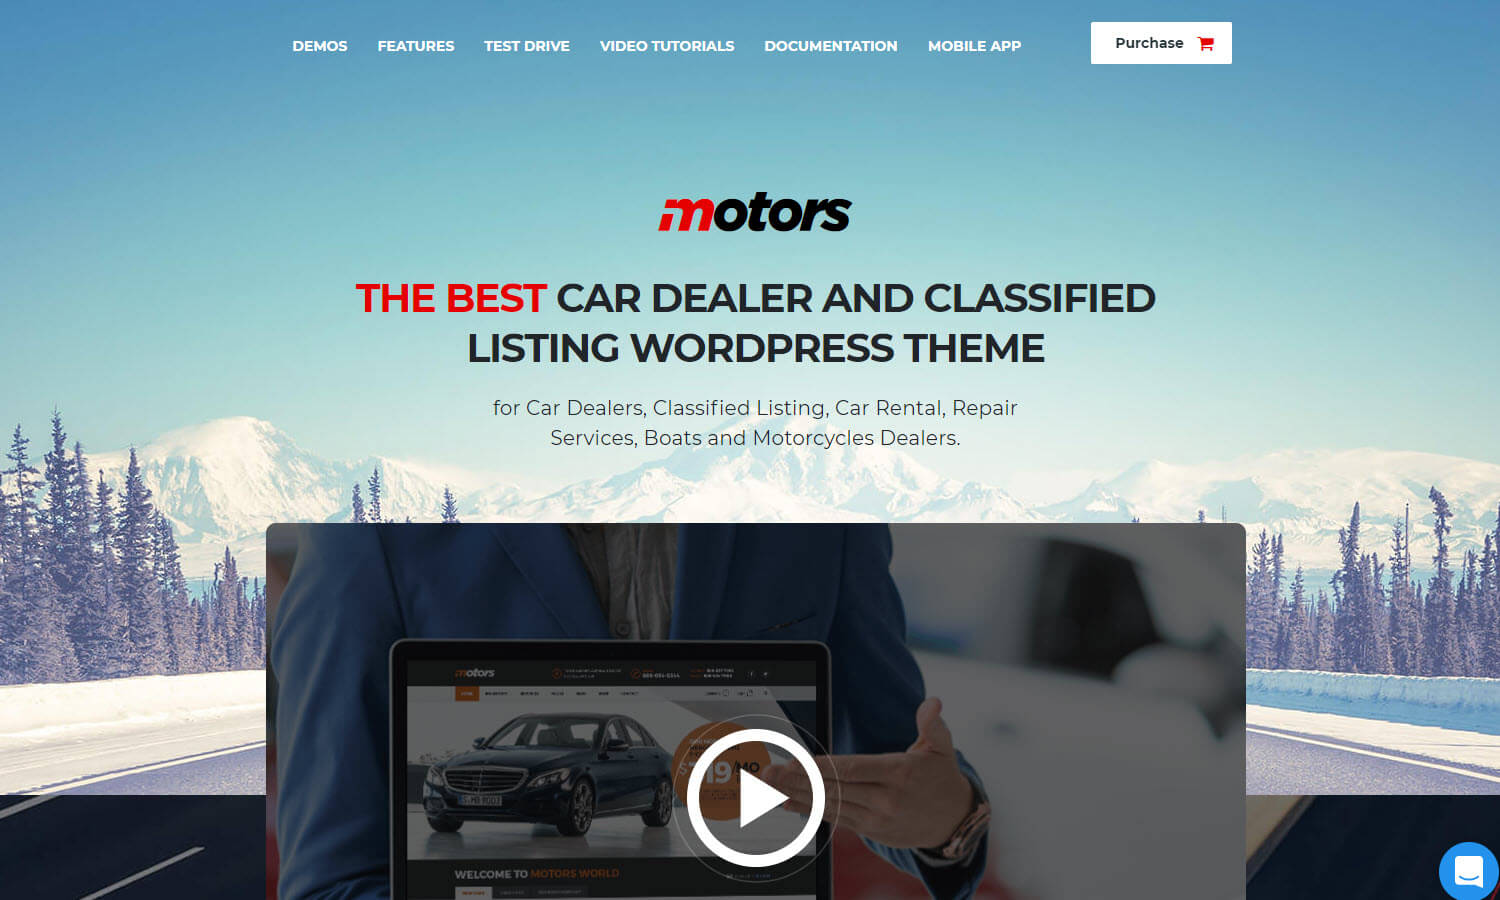 Motors screenshot